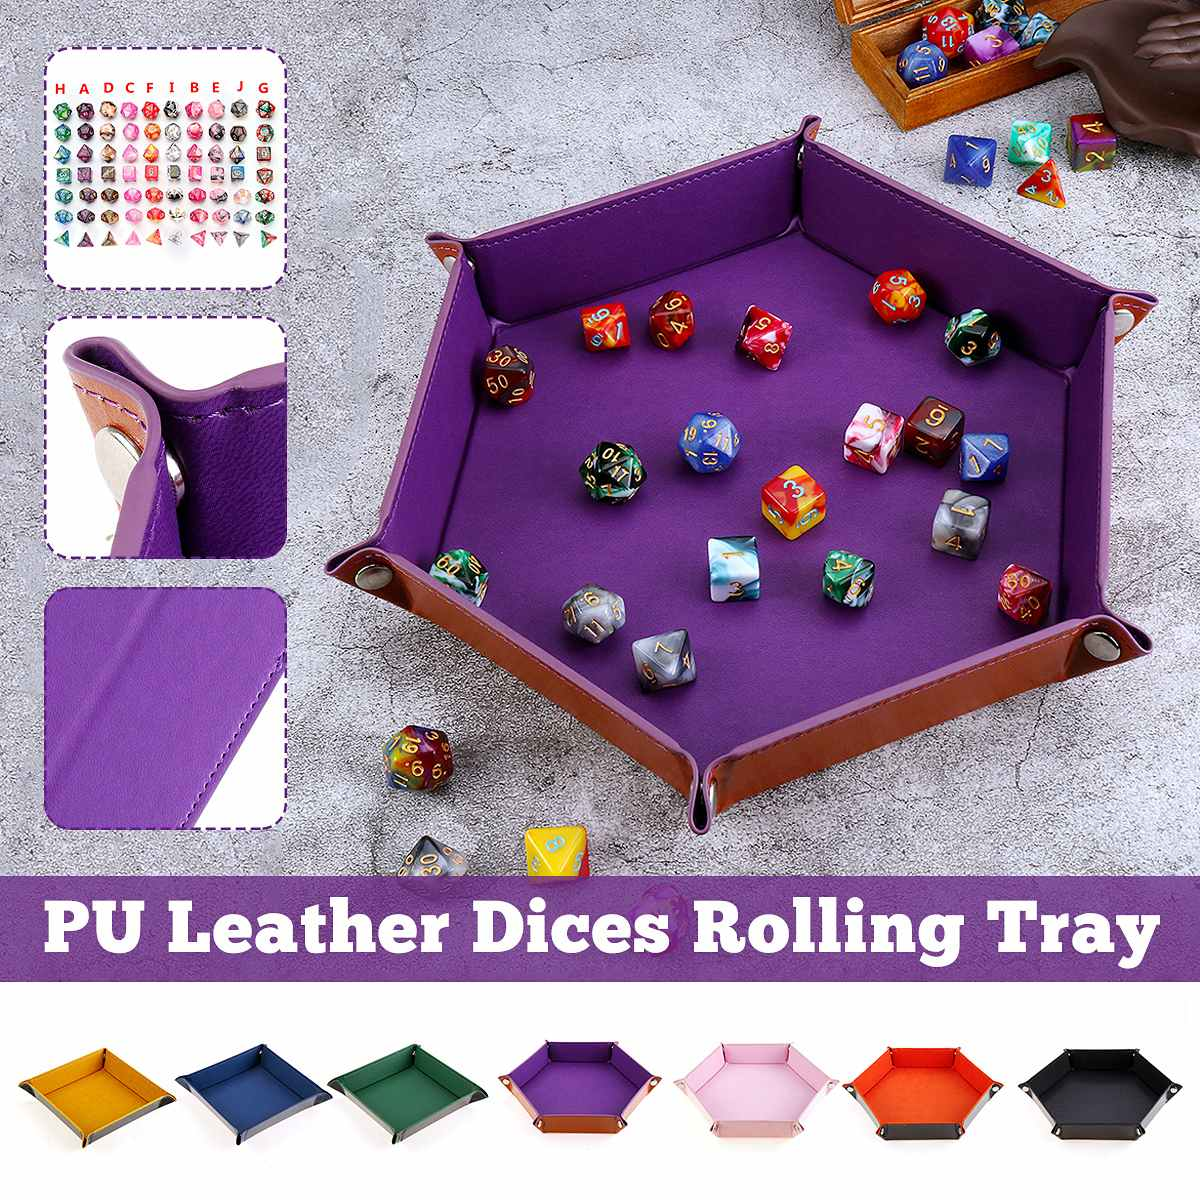 1pcs PU Leather Folding Dice Tray Polyhedral Club Dice Box Plate For RPG DnD Board Games D&D Dice Storage Case Dropshipping 2020